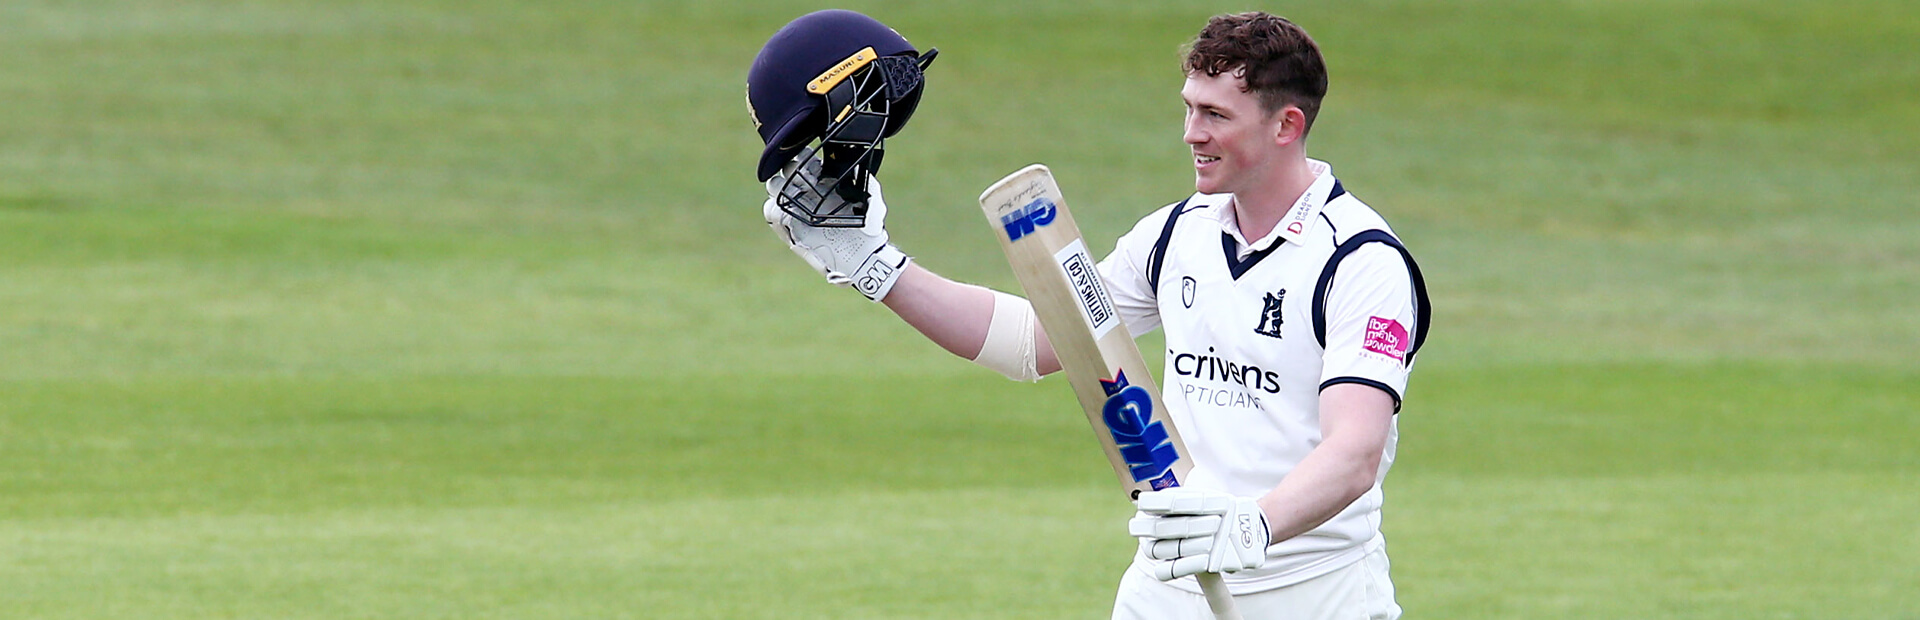 Report: Warwickshire v Worcestershire, LV= Insurance County Championship